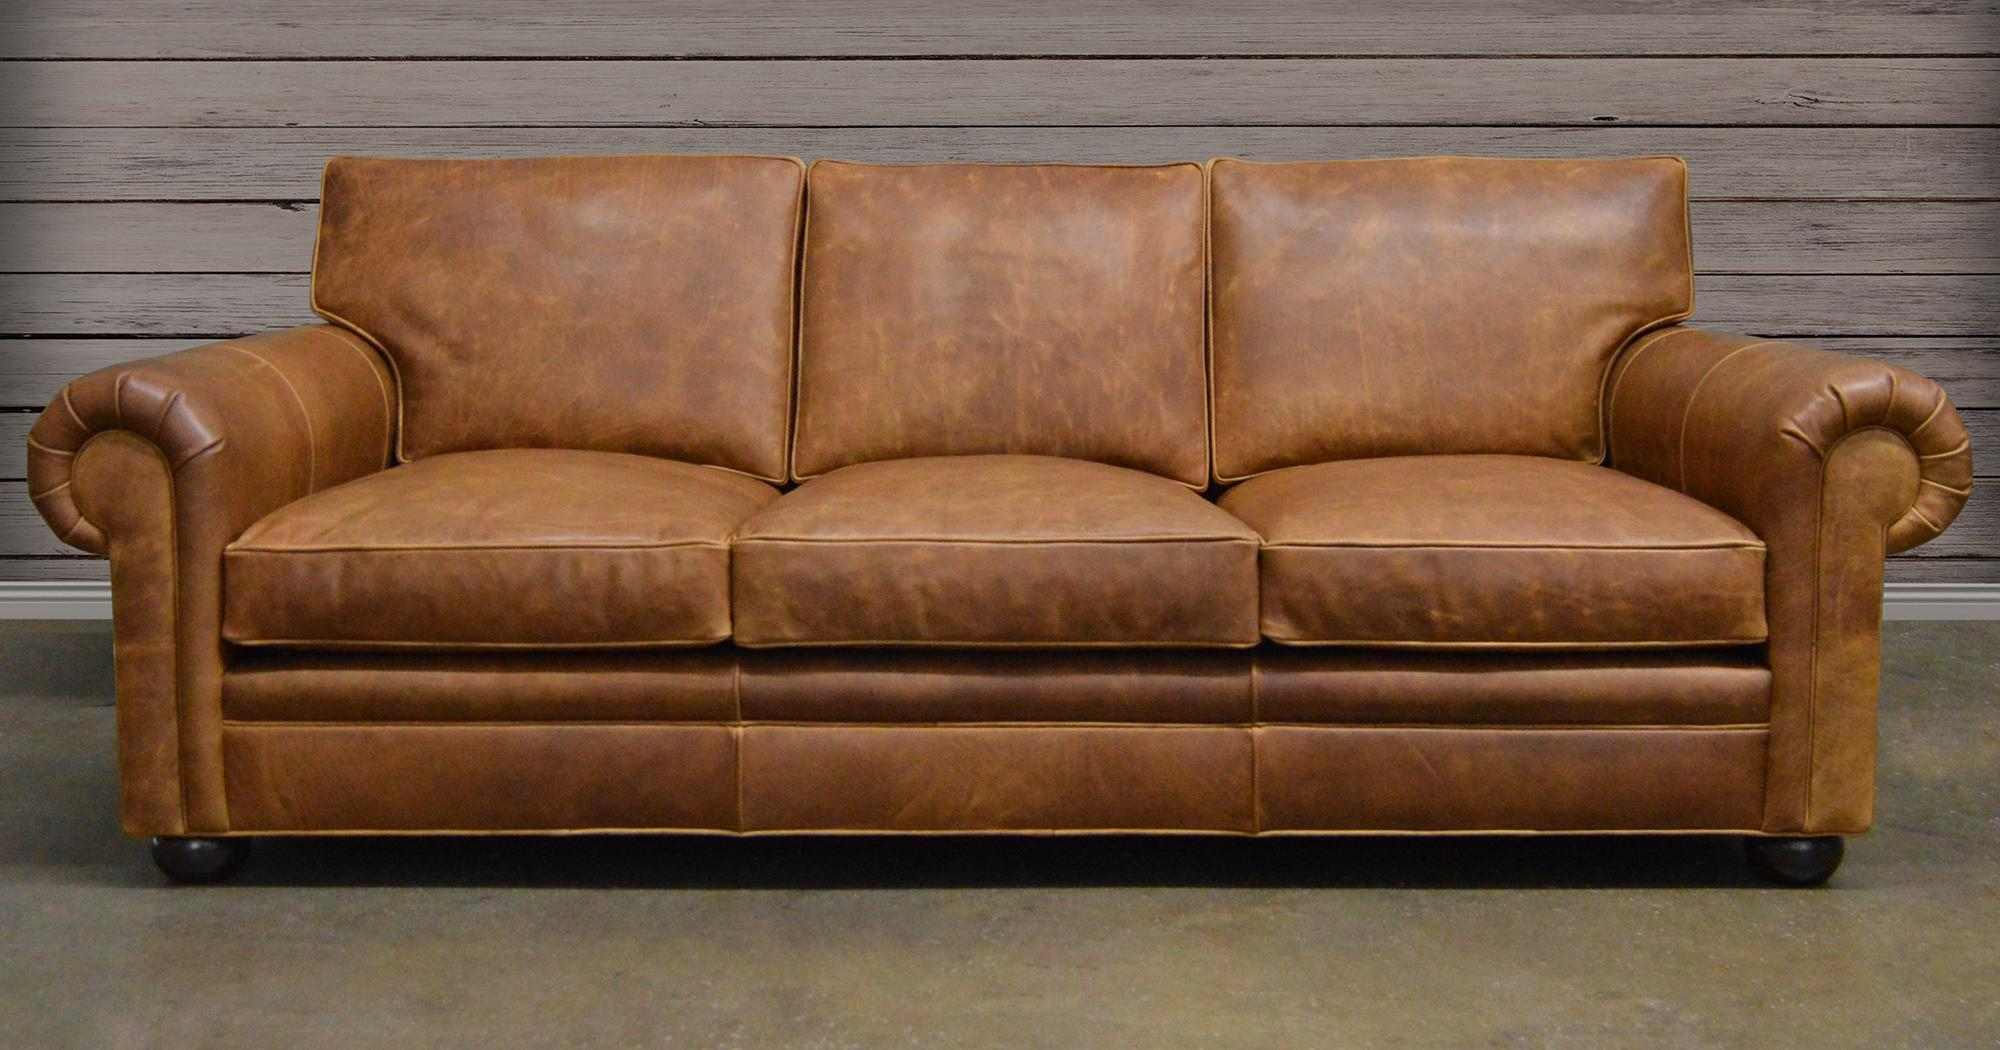 Furnitures: Classy Full Grain Leather Sofa For Luxury Living Room With Aniline Leather Sofas (Image 13 of 20)